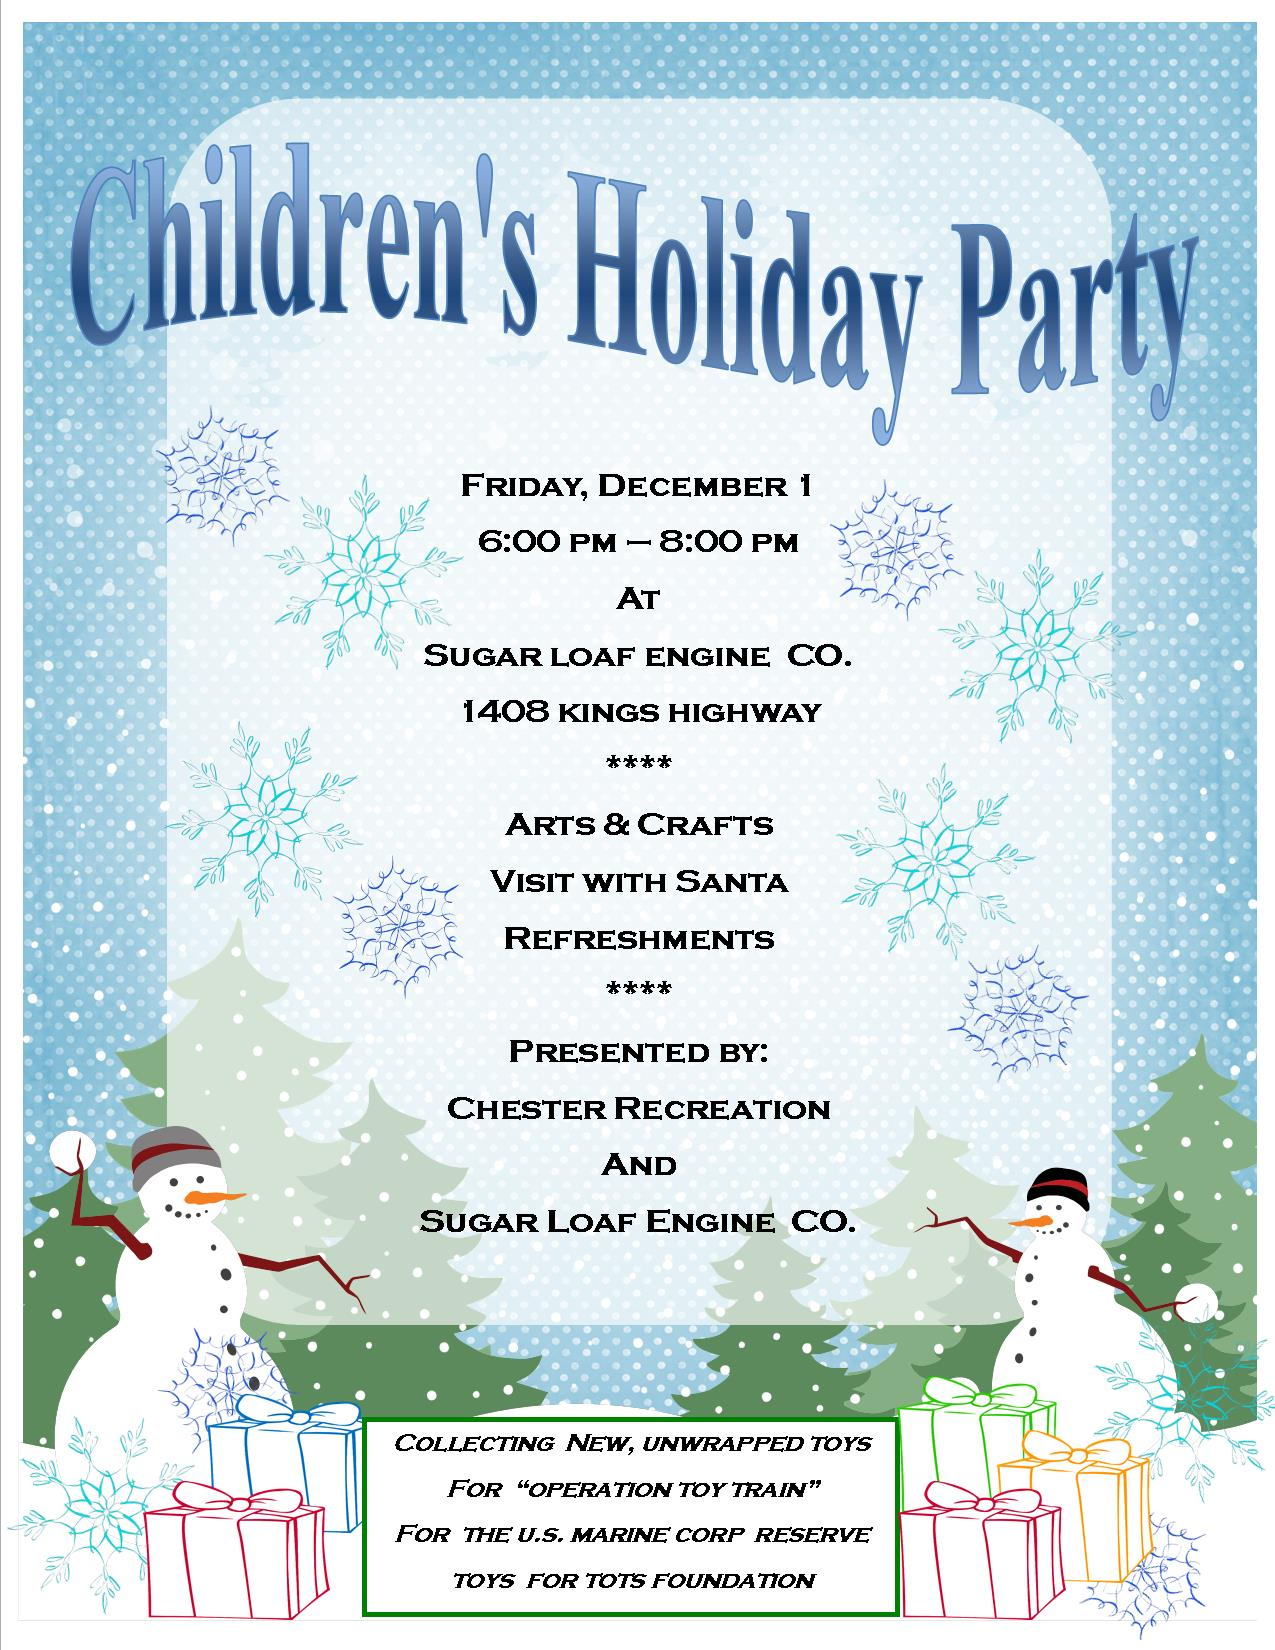 2017 Chester Park & Rec and Sugar Loaf Engine Co. Children's Holiday Party